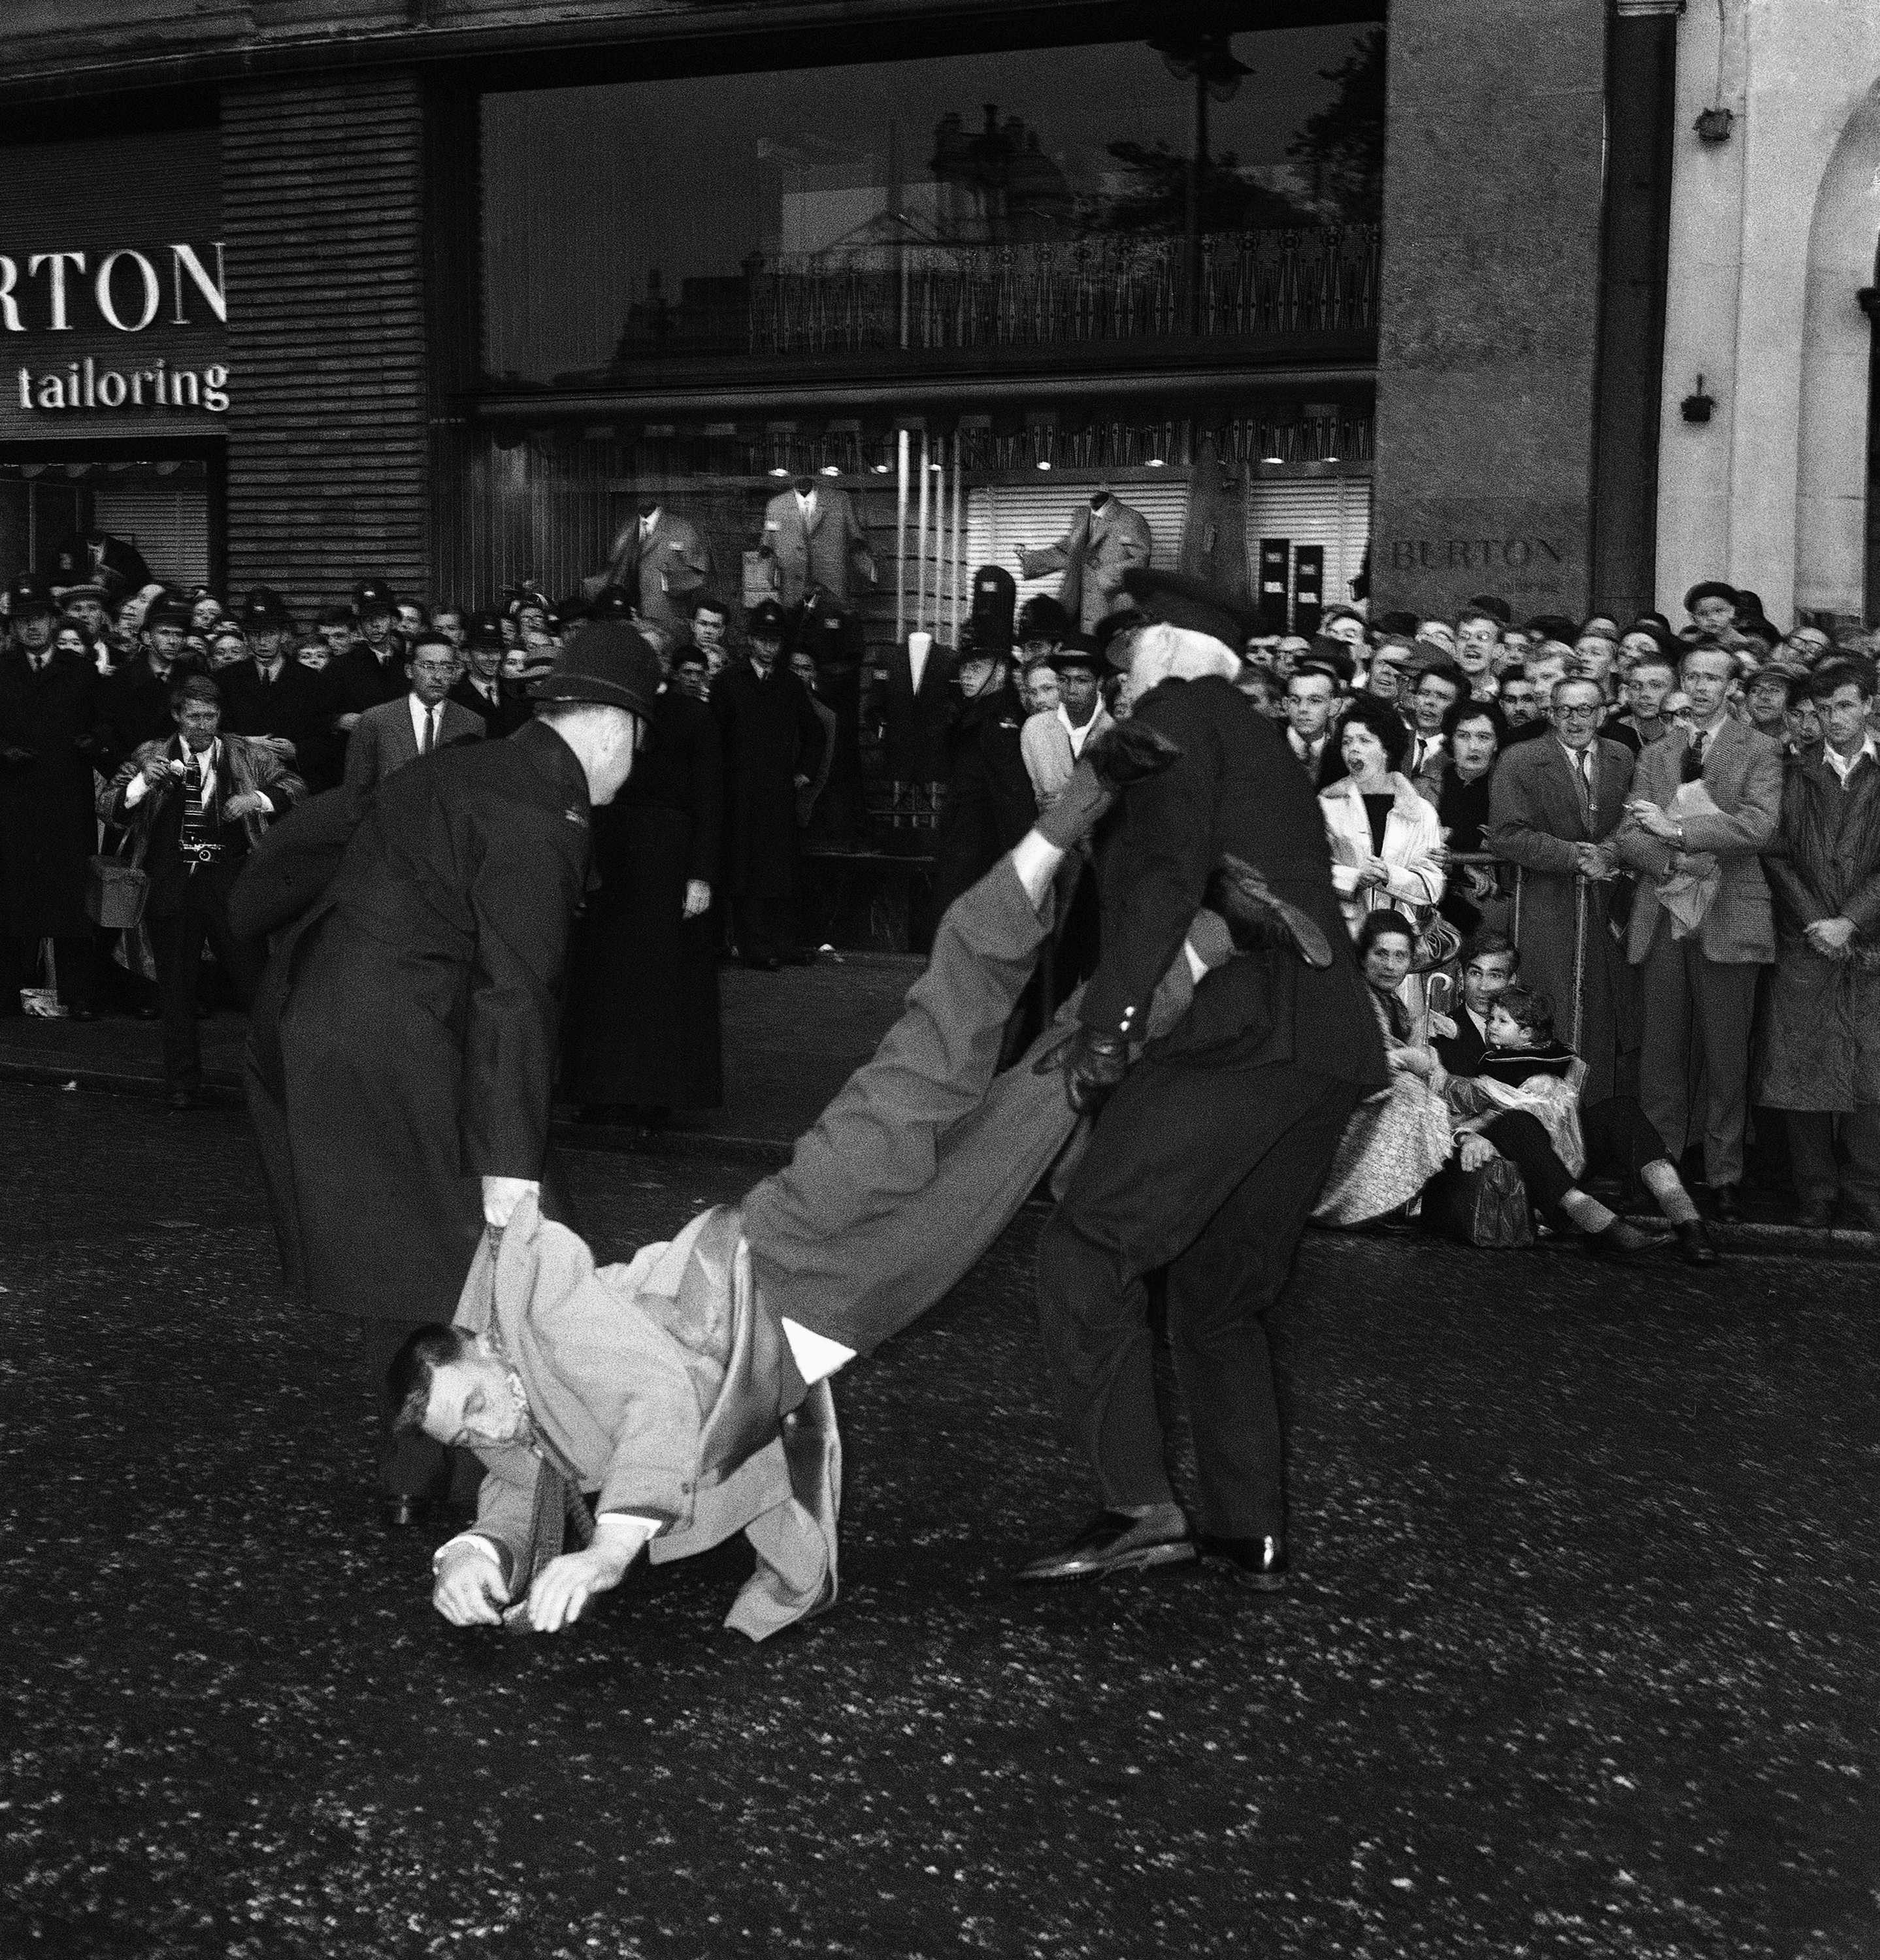 A well-dressed man is dragged away, head down, by police officers after sitting down during the huge Ban-the-bomb rally in London's rain-soaked Trafalgar Square, United Kingdom on Sept. 17, 1961. Note shouting woman in right background. Hundreds of demonstrators sat down in the square as the crowd grew to well over 10,000. Several skirmishes broke out between demonstrators and the police and by 6.15 pm, 86 people had been arrested. (AP Photo/Robert Rider-Rider)